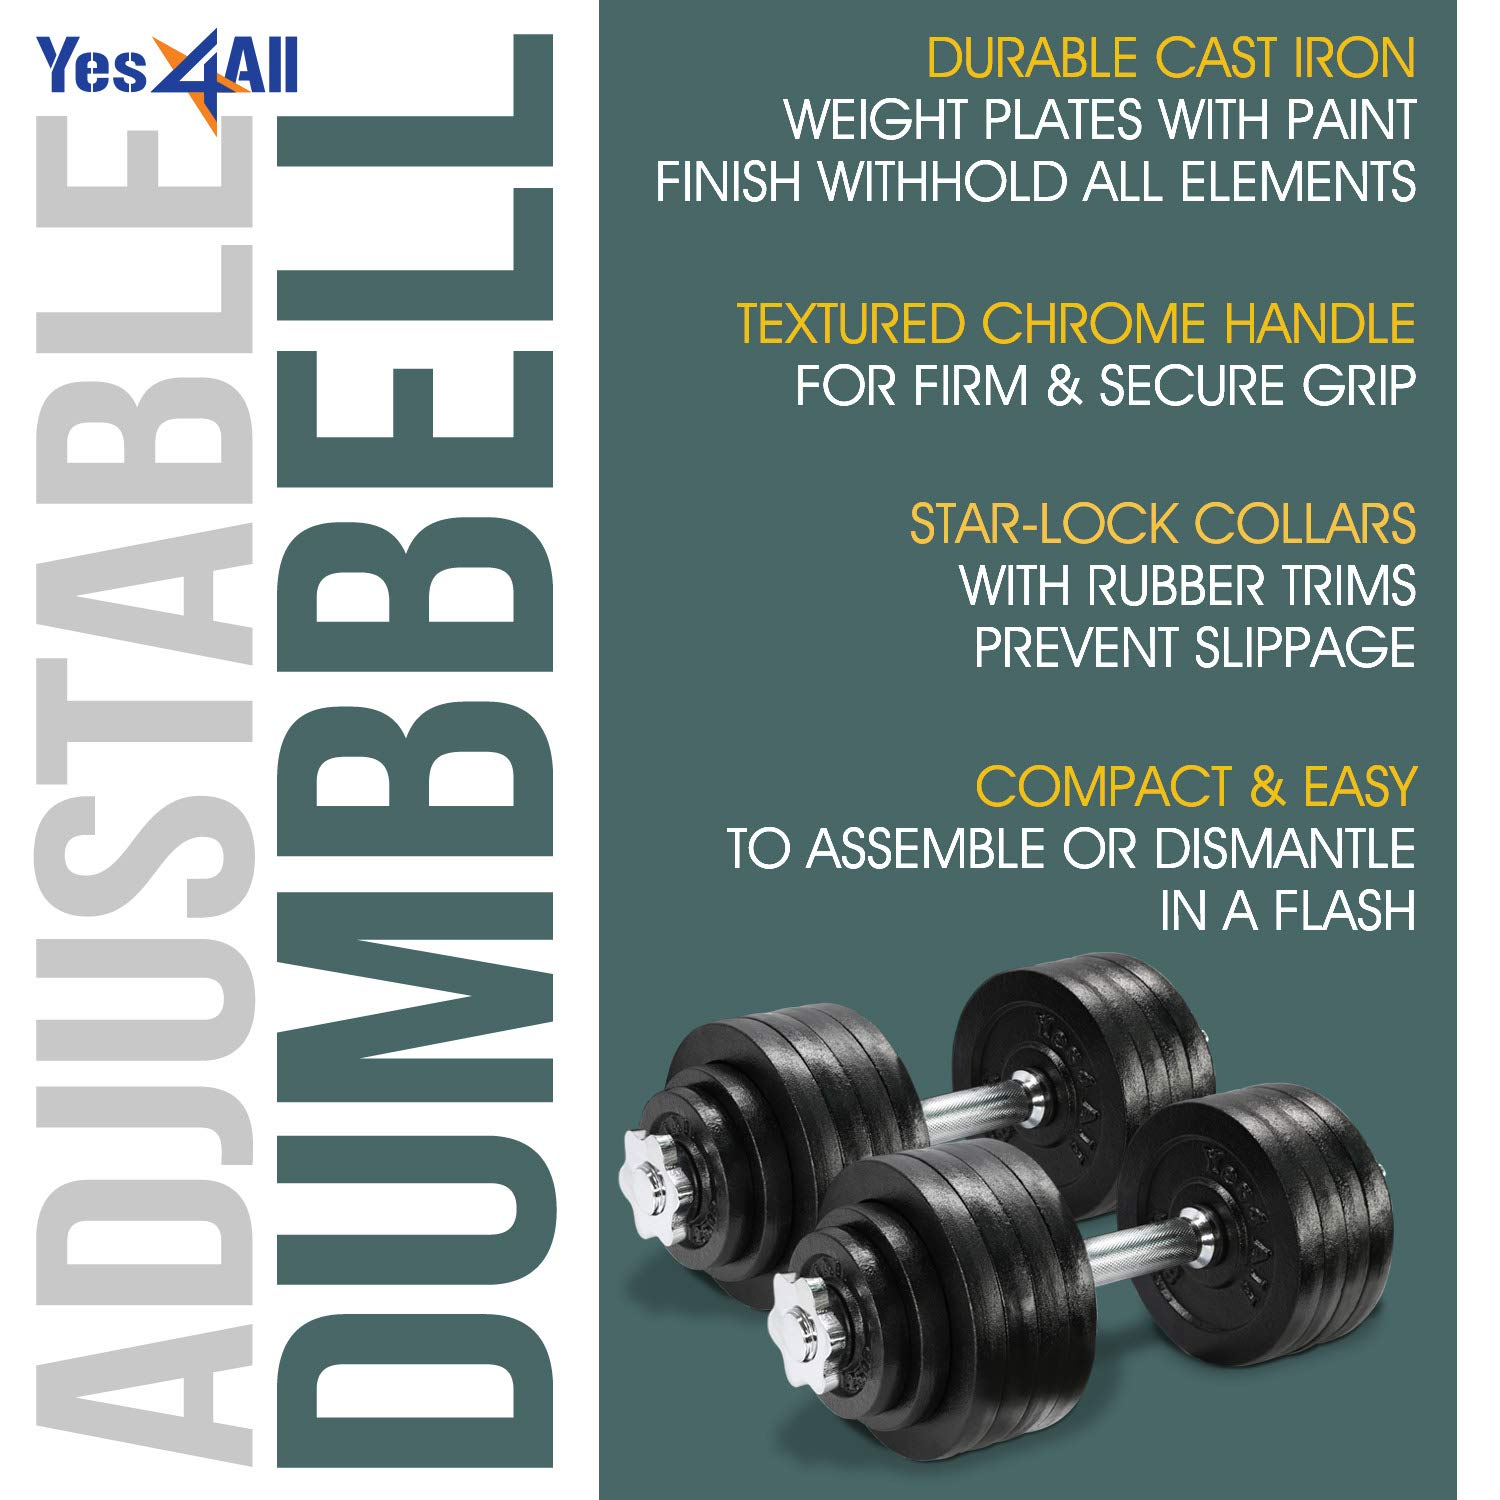 Yes4All Adjustable Dumbbells - 105 lb Dumbbell Weights (Pair) by Yes4All (Image #5)